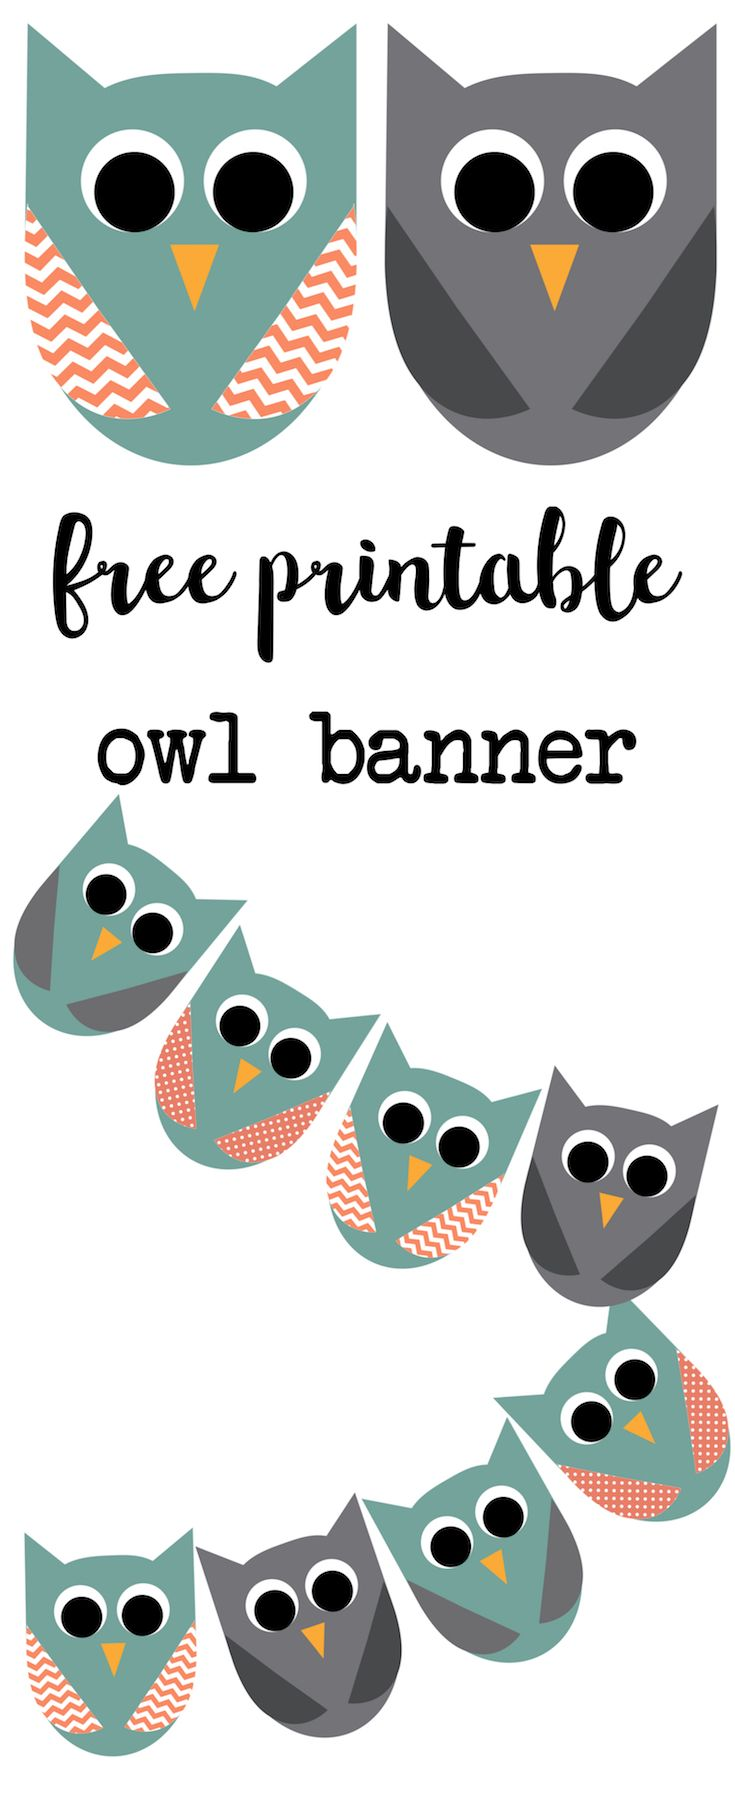 Free Printable Owl Banner. Print this owl banner for an owl birthday party or use it as an owl baby shower banner. Easy DIY for owl party decor.